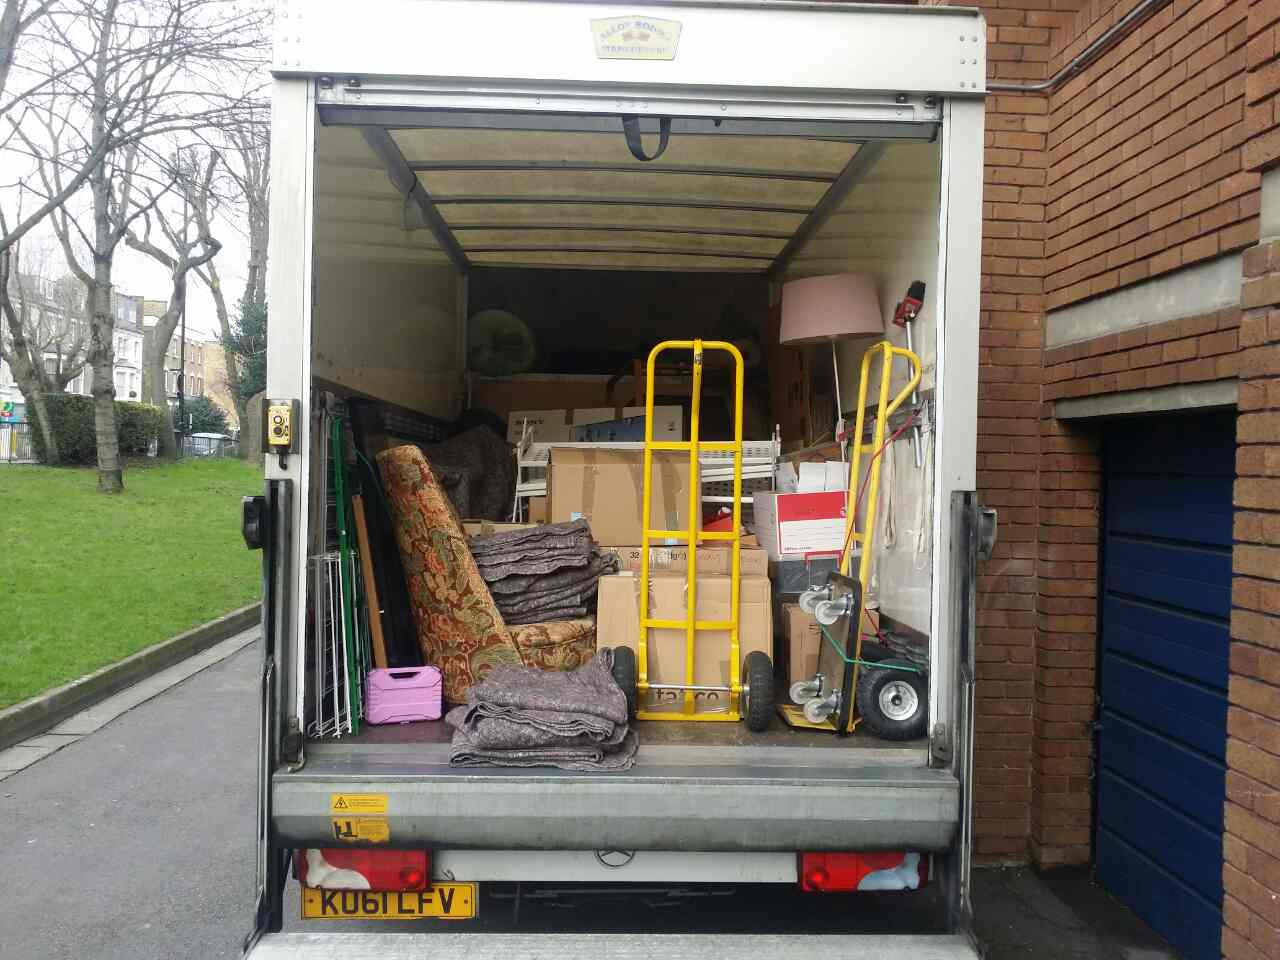 SW4 movers in Clapham Park